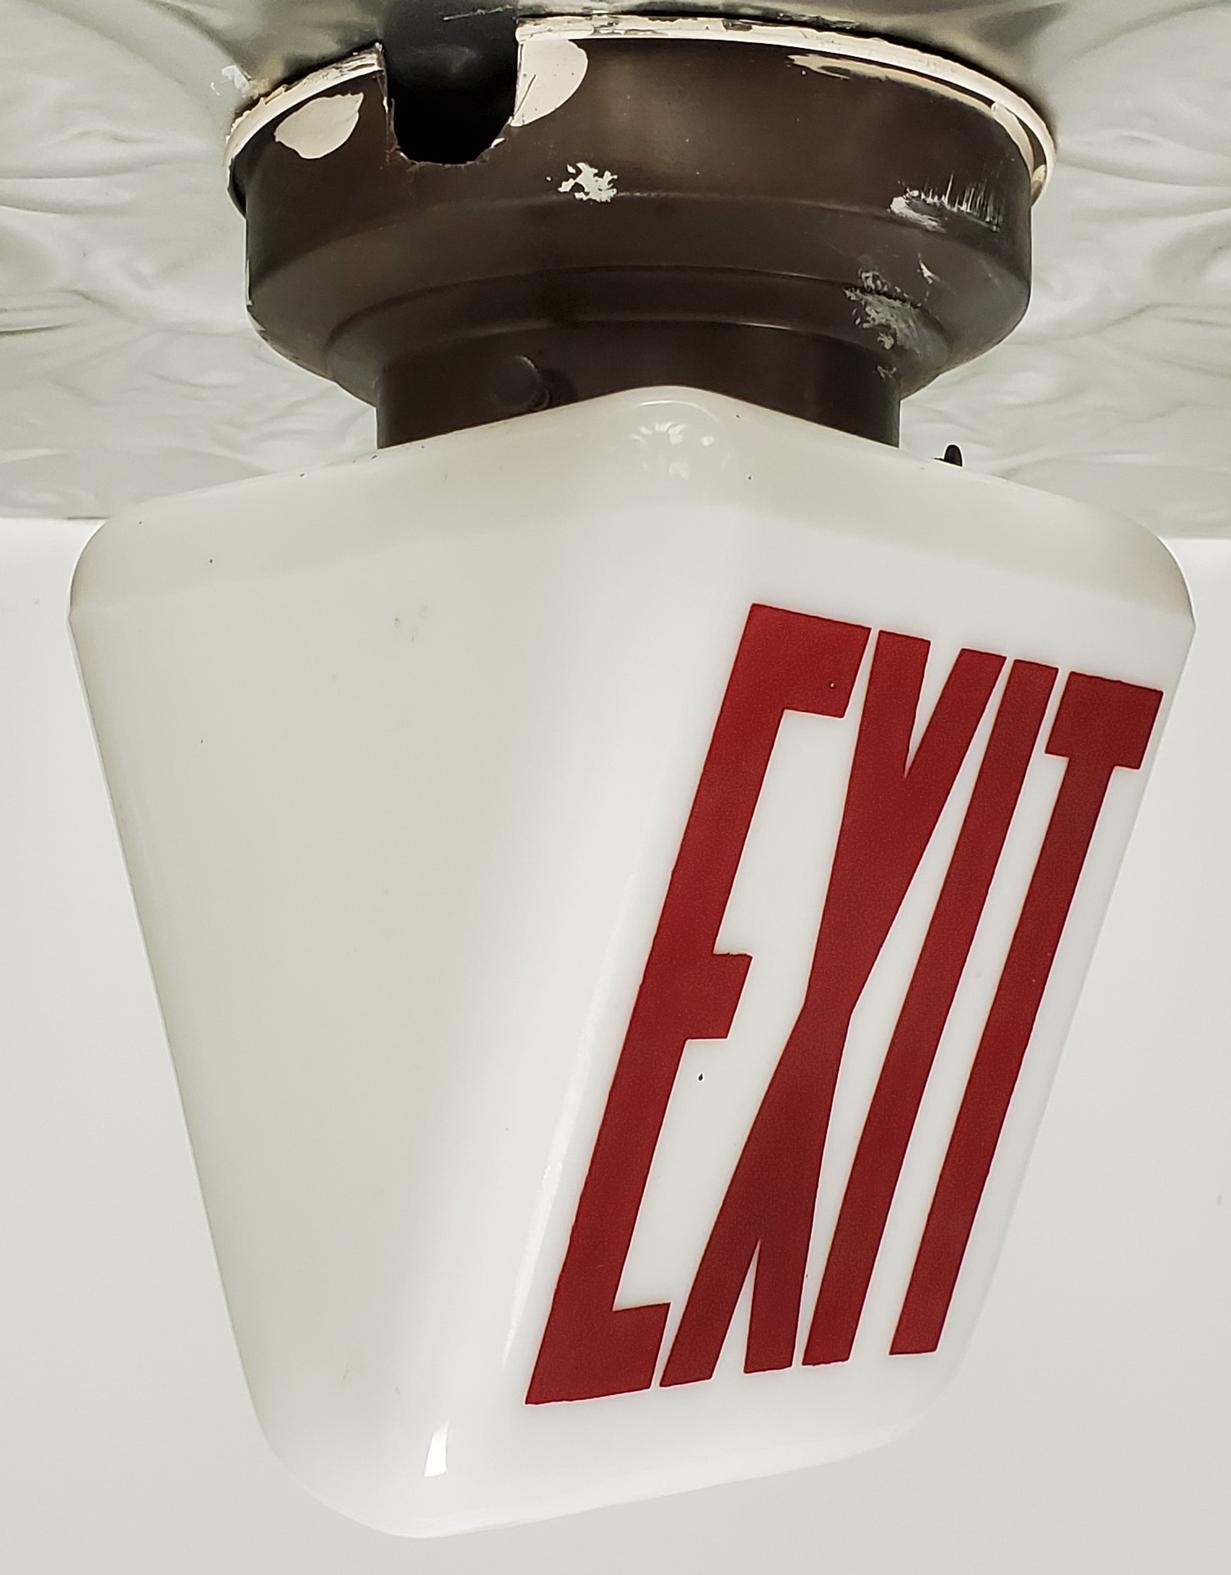 EXIT Light Sign -002